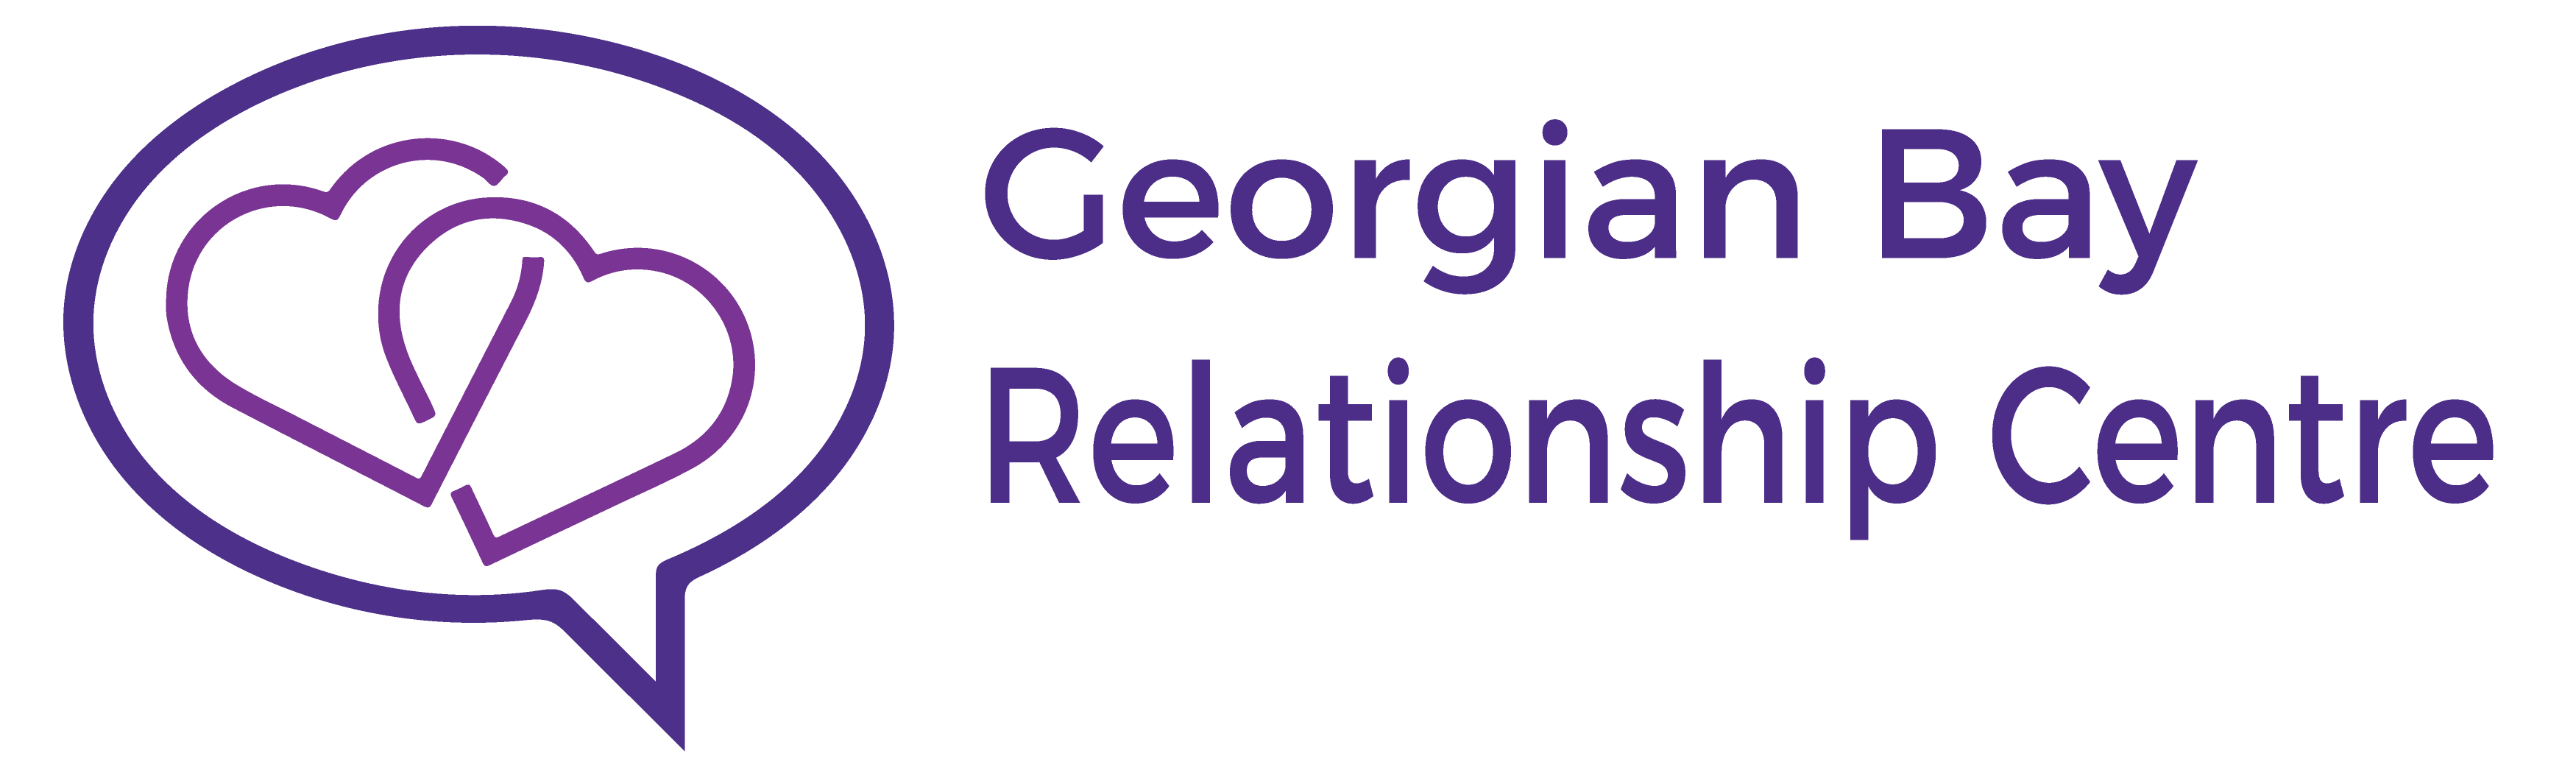 Georgian Bay Relationship Centre